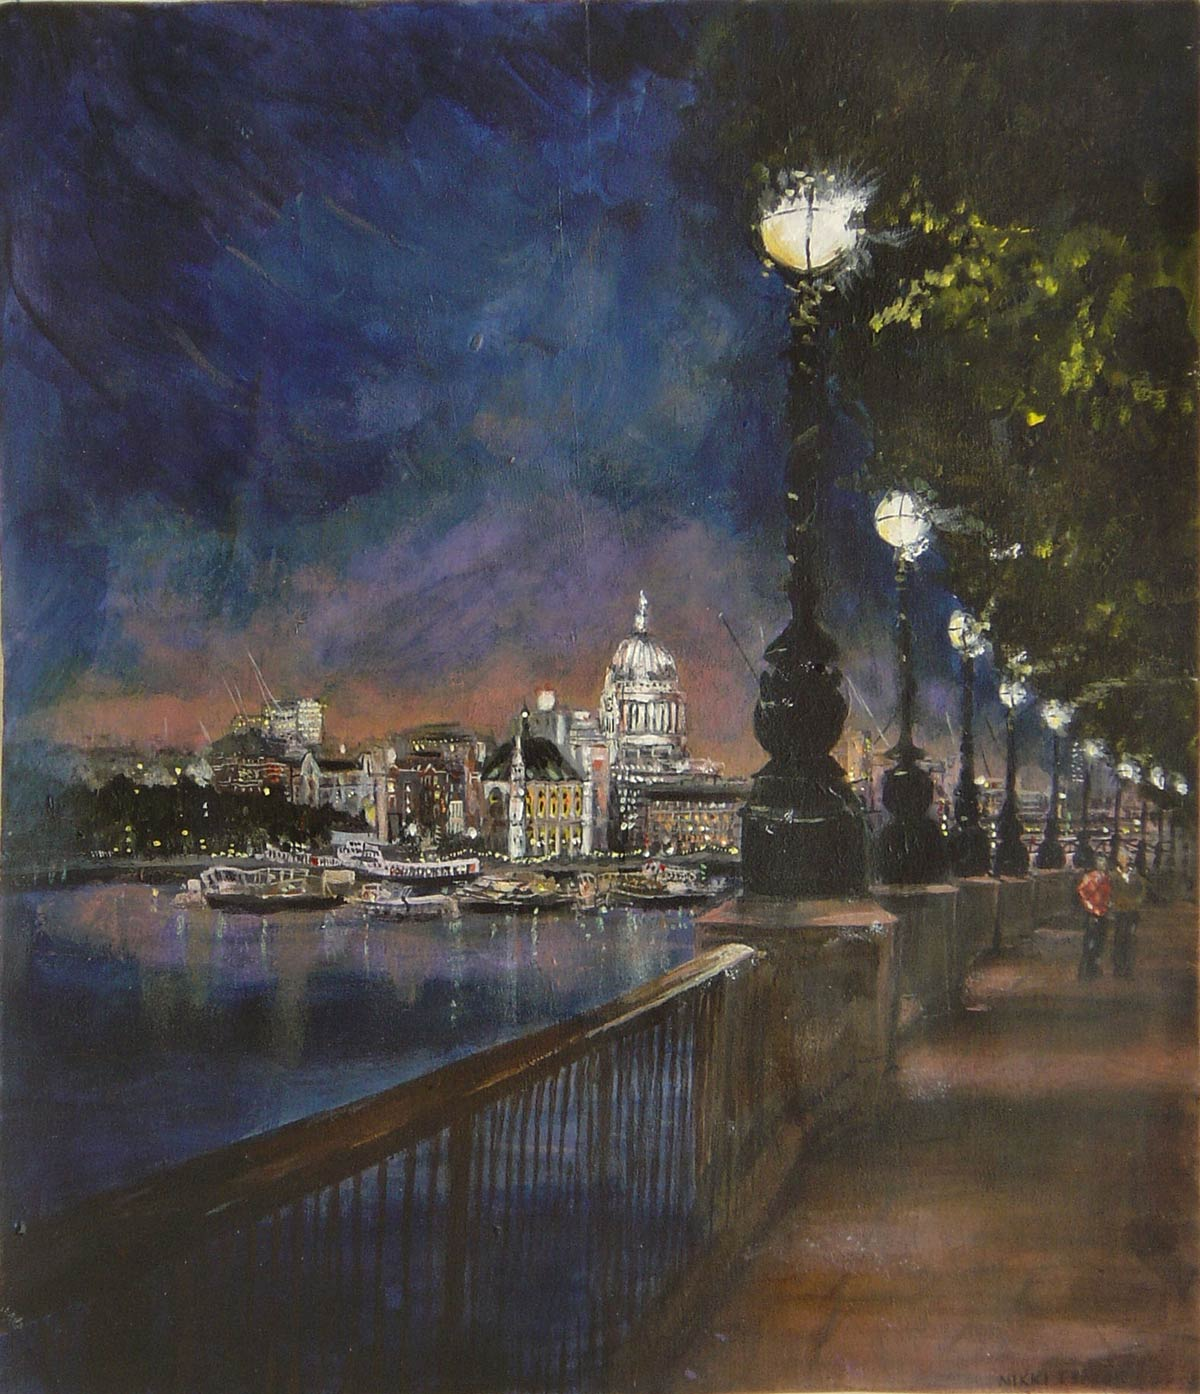 South Bank evening II 34 x 29 cm